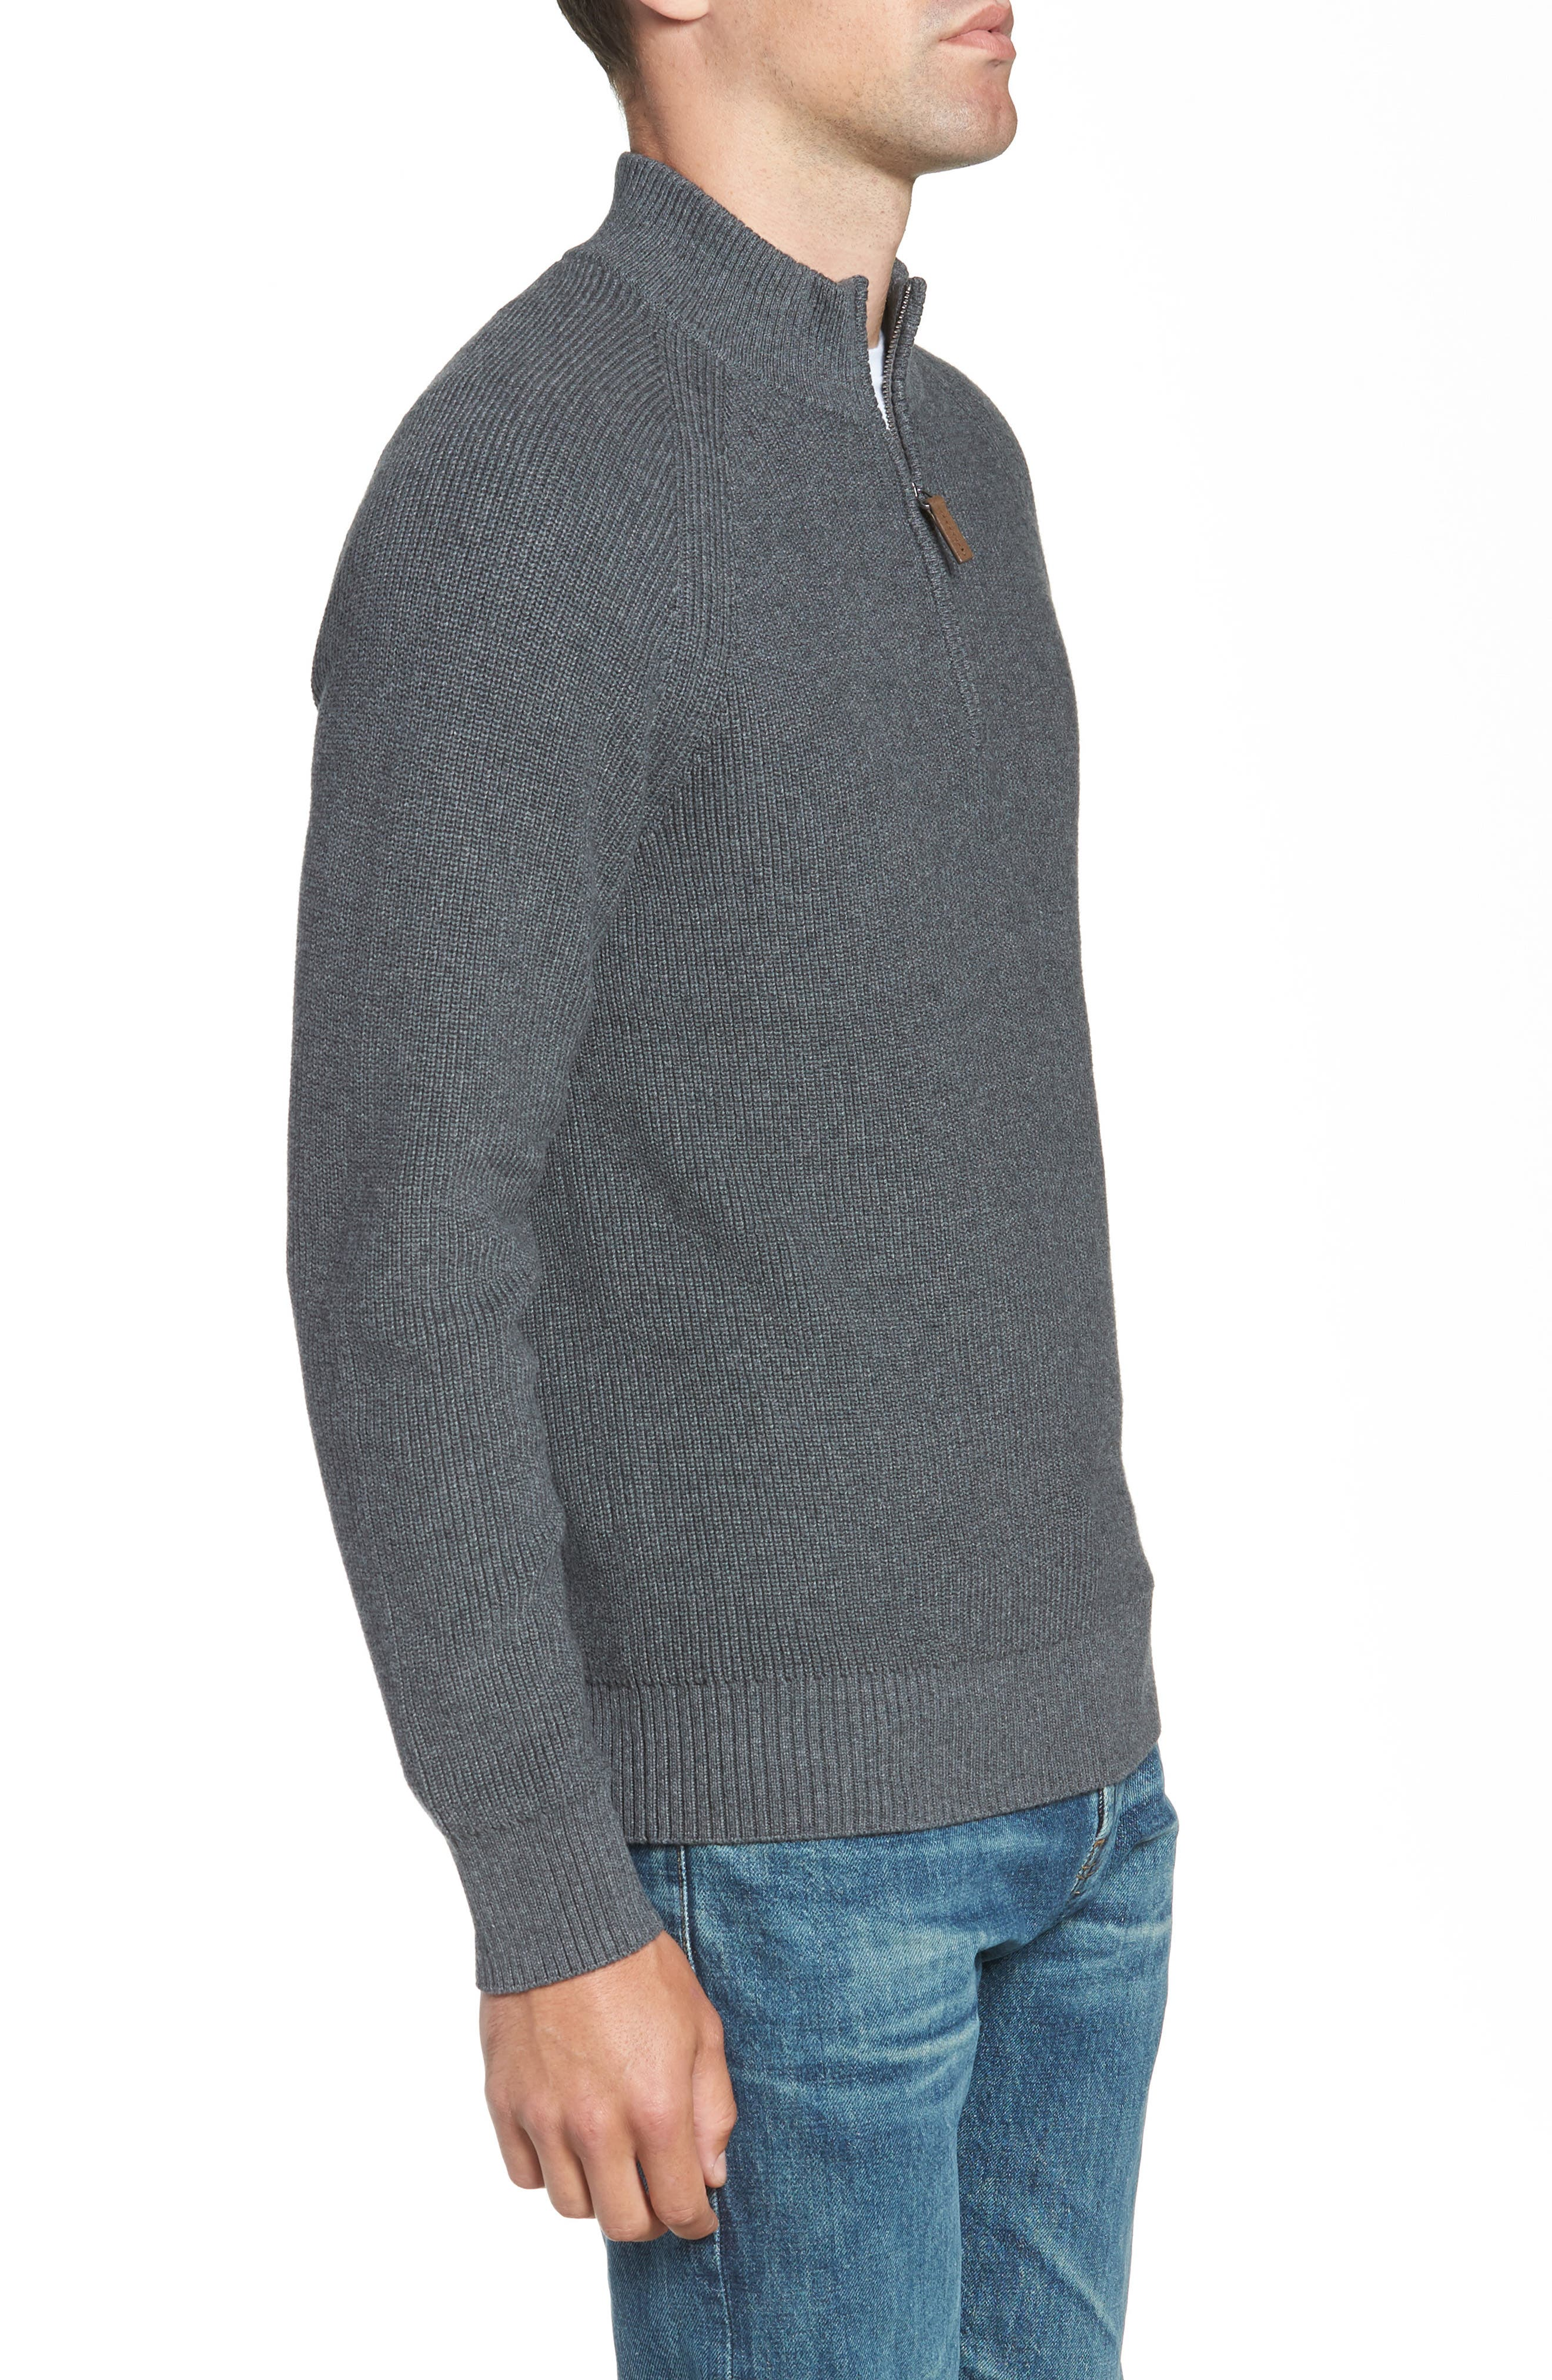 Ribbed Quarter Zip Sweater,                             Alternate thumbnail 3, color,                             GREY CASTLEROCK